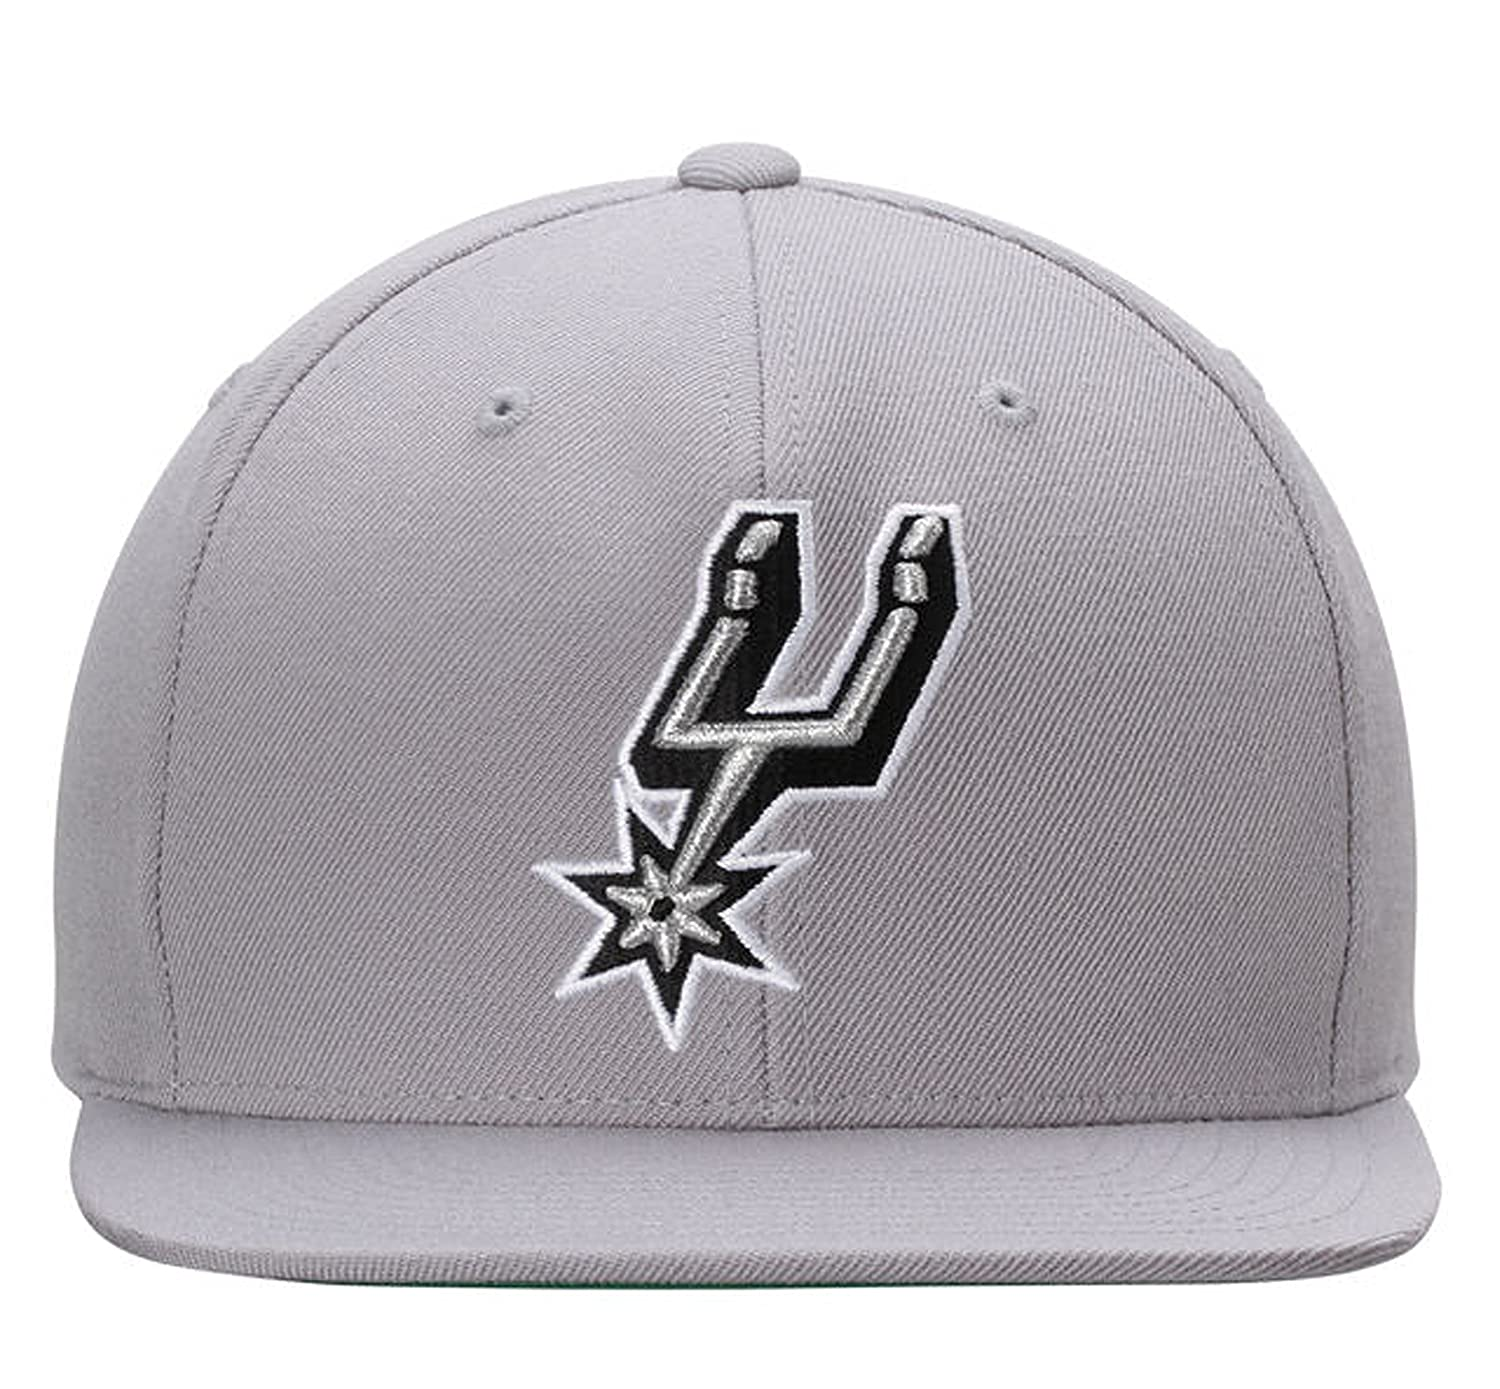 Mitchell   Ness San Antonio Spurs Snapback in Grey at Amazon Men s Clothing  store  7ec490a6be7